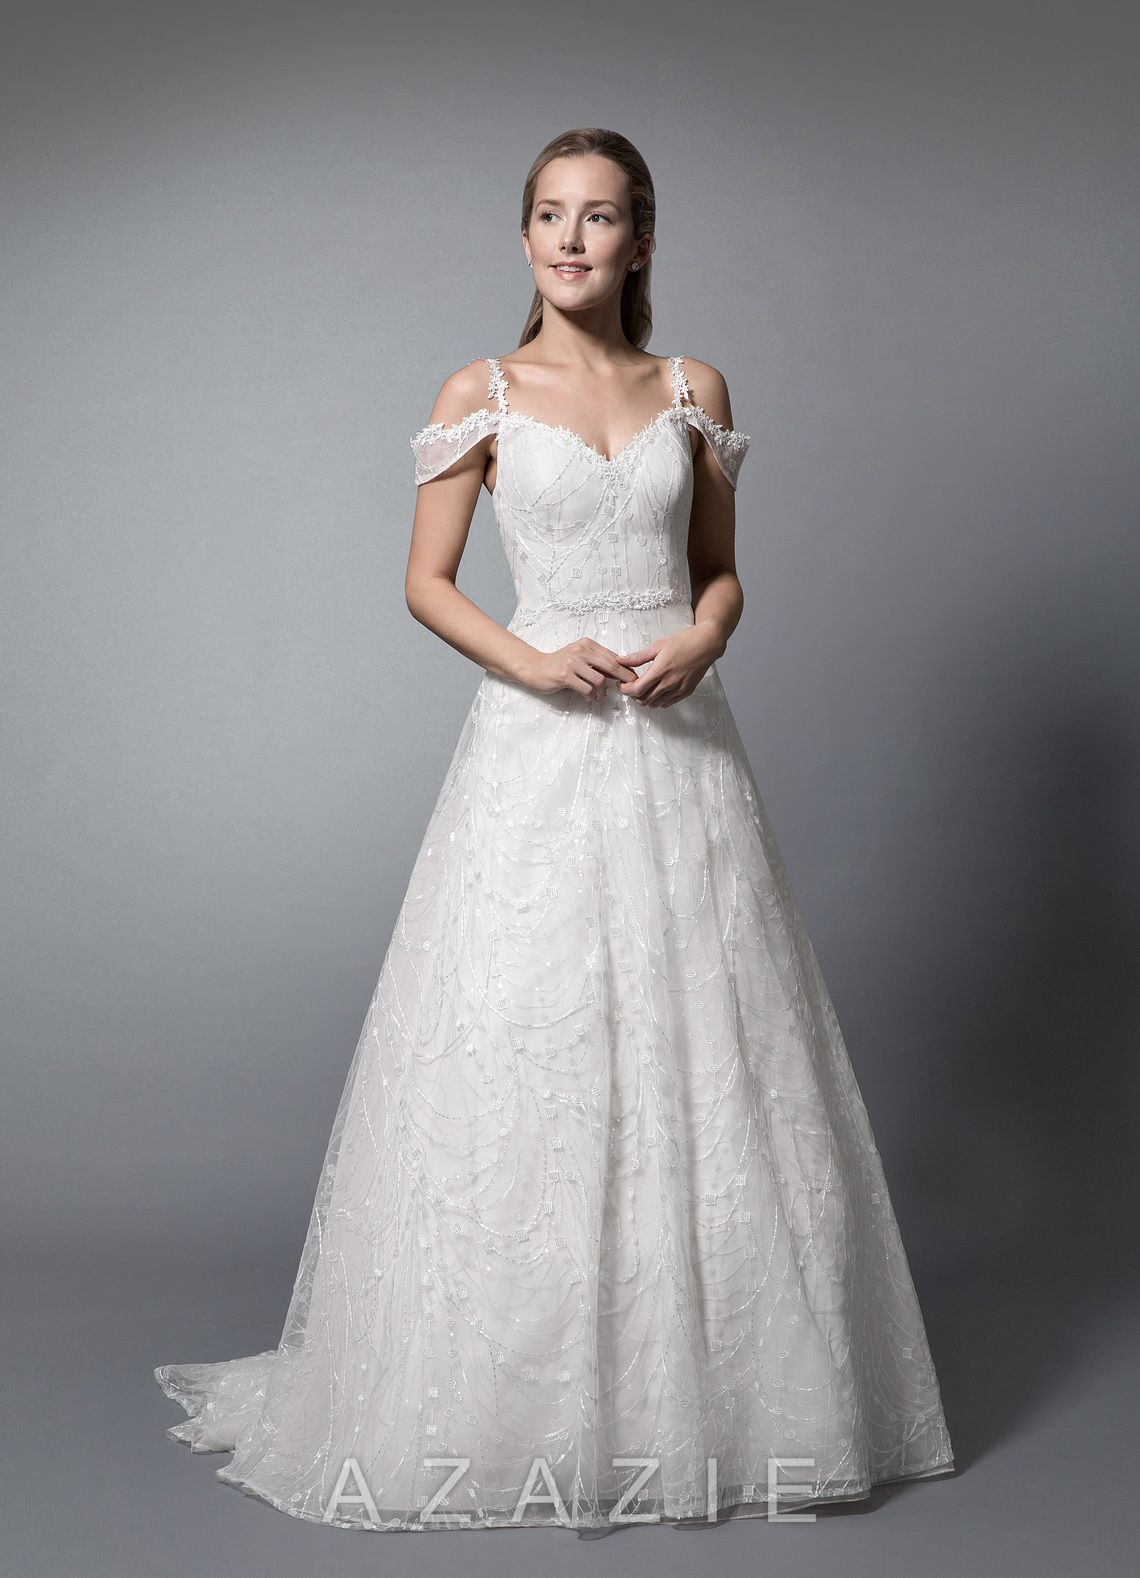 aa110ae927 Azazie Kyrene BG Wedding Dress